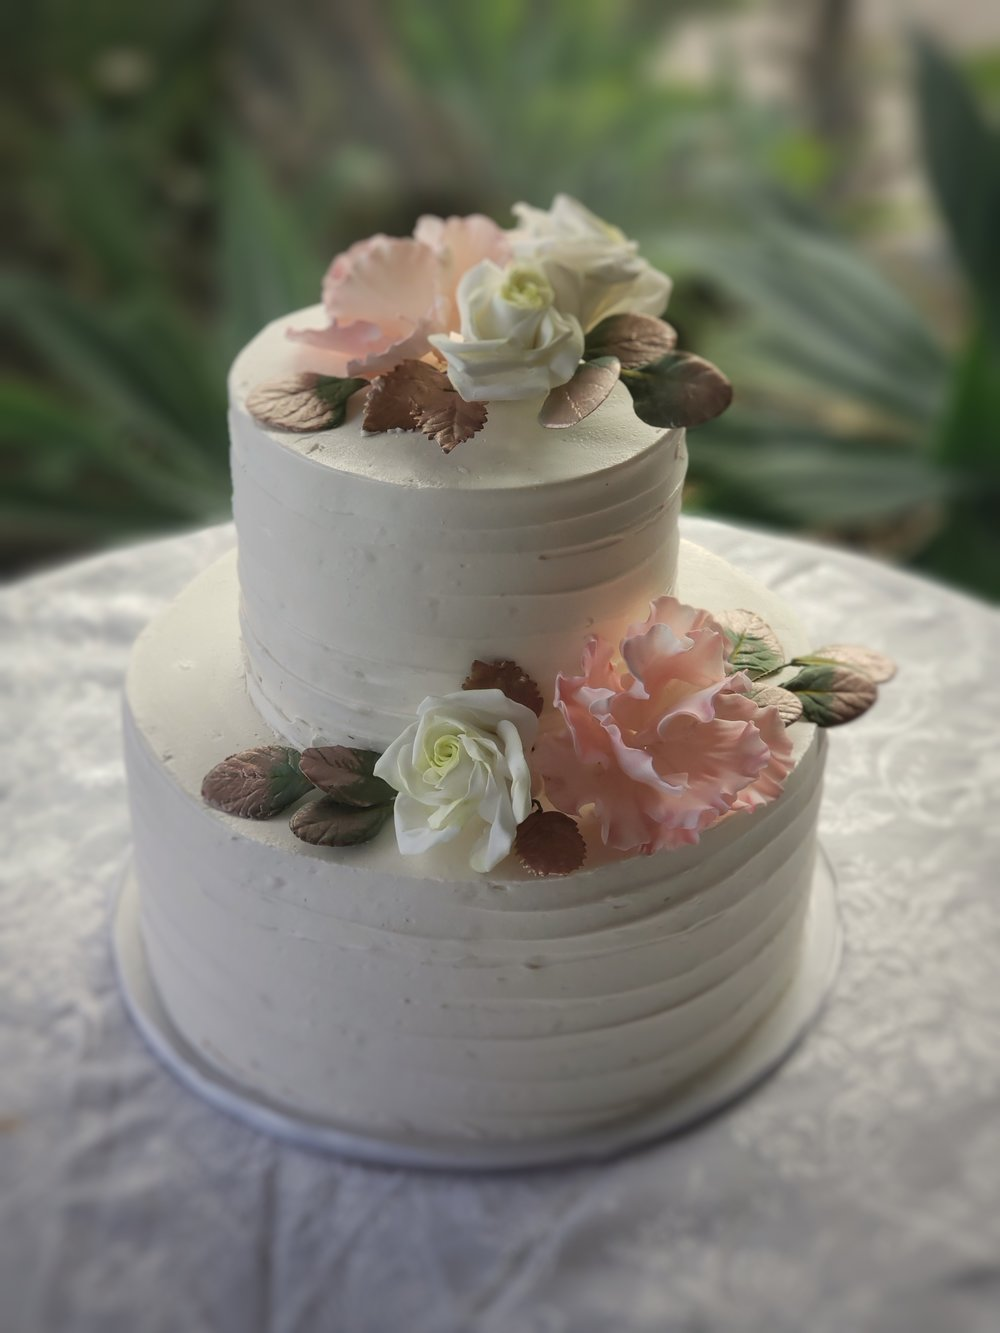 Copy of Two tier round textured buttercream wedding cakewith sugar peonies, roses and rose gold leaves Hilo Hawaii Big Island Kailua-Kona